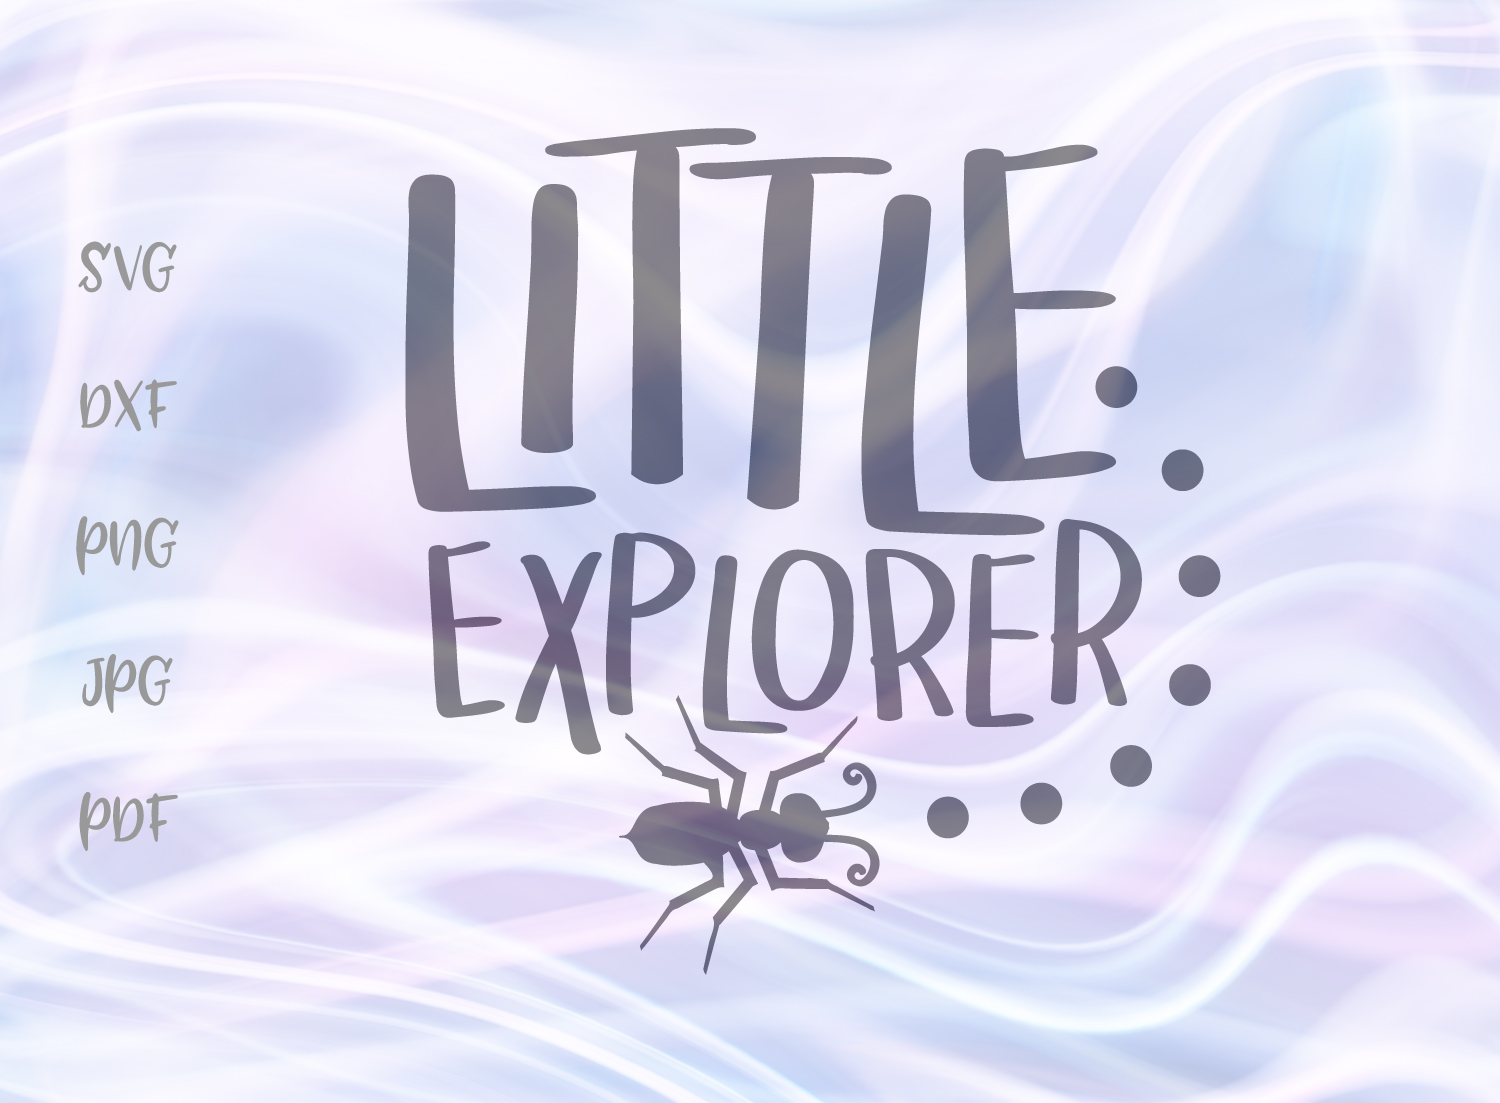 Download Free Little Explorer Svg Graphic By Digitals By Hanna Creative Fabrica for Cricut Explore, Silhouette and other cutting machines.